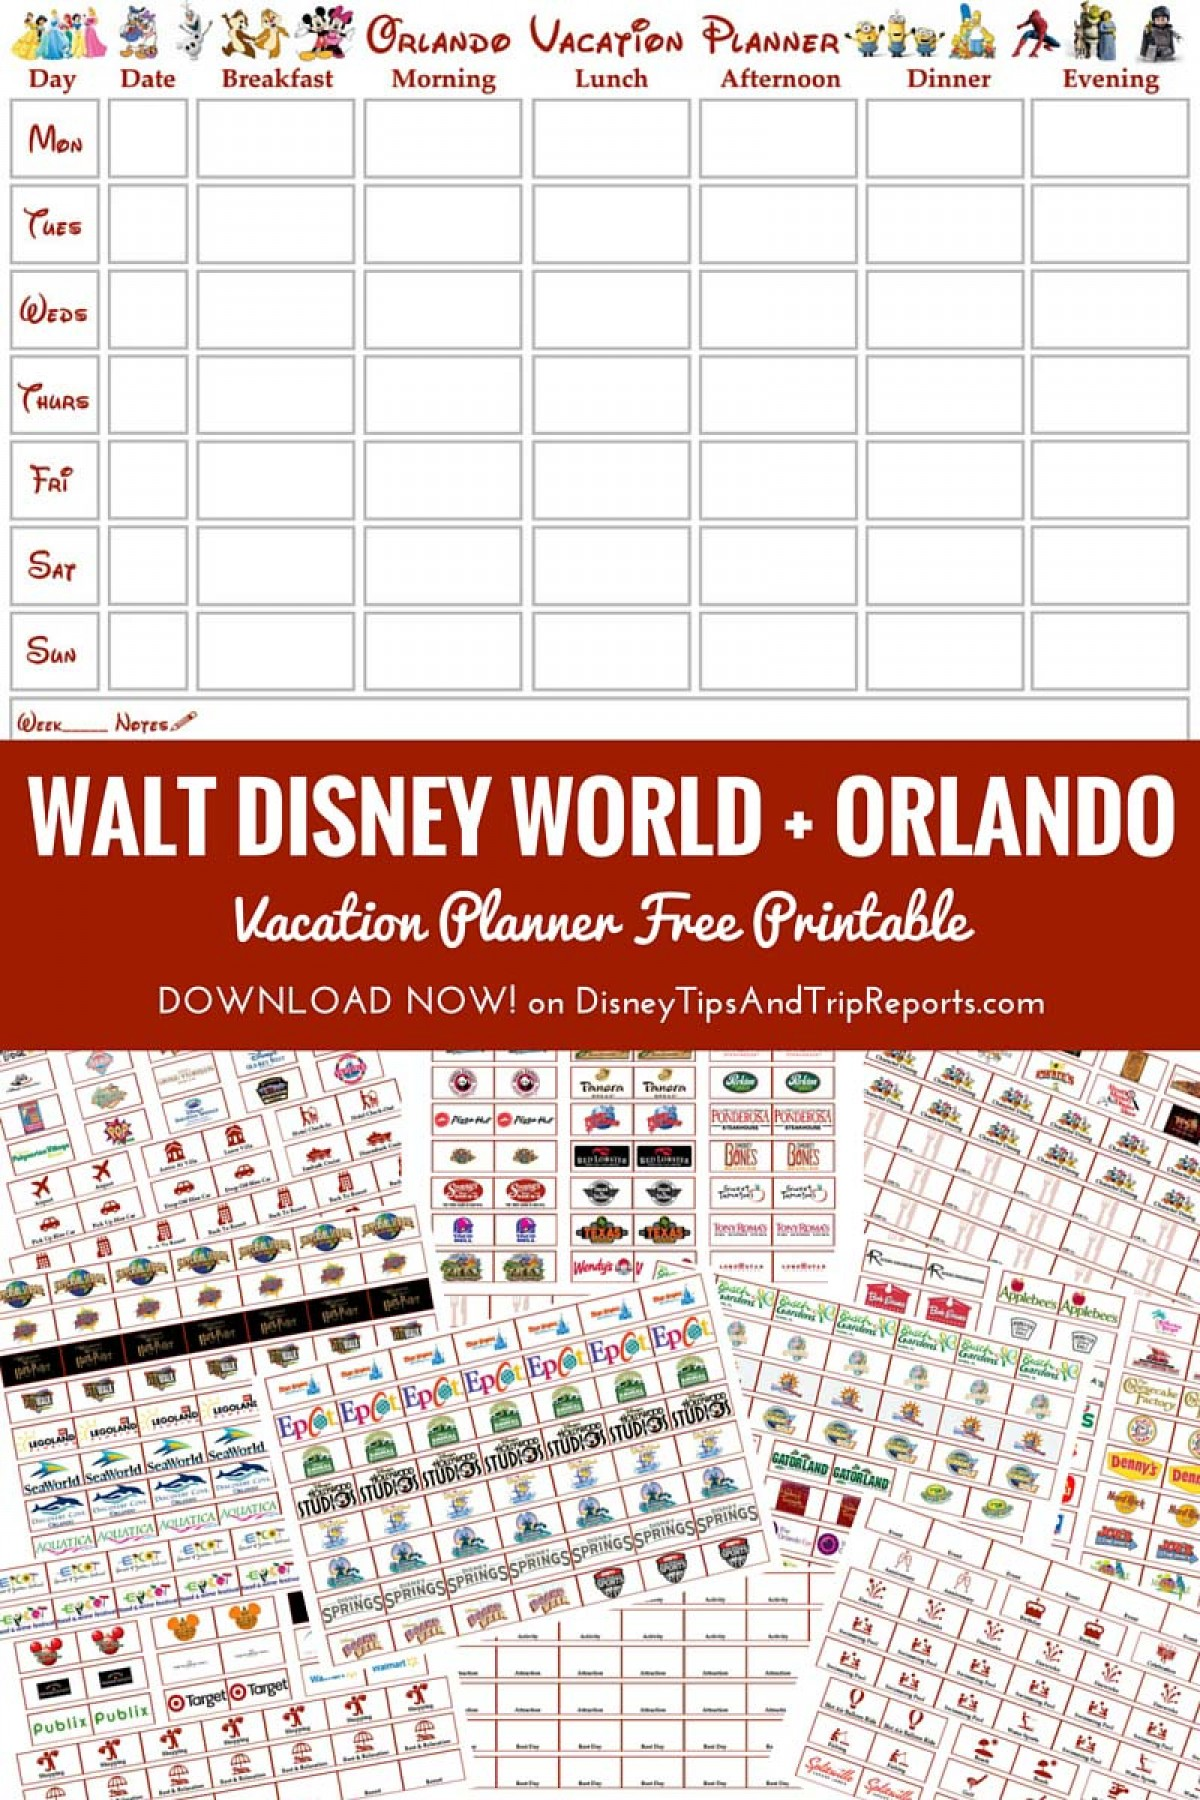 Calendar Planner Printable Sia : Walt disney world orlando vacation planner free